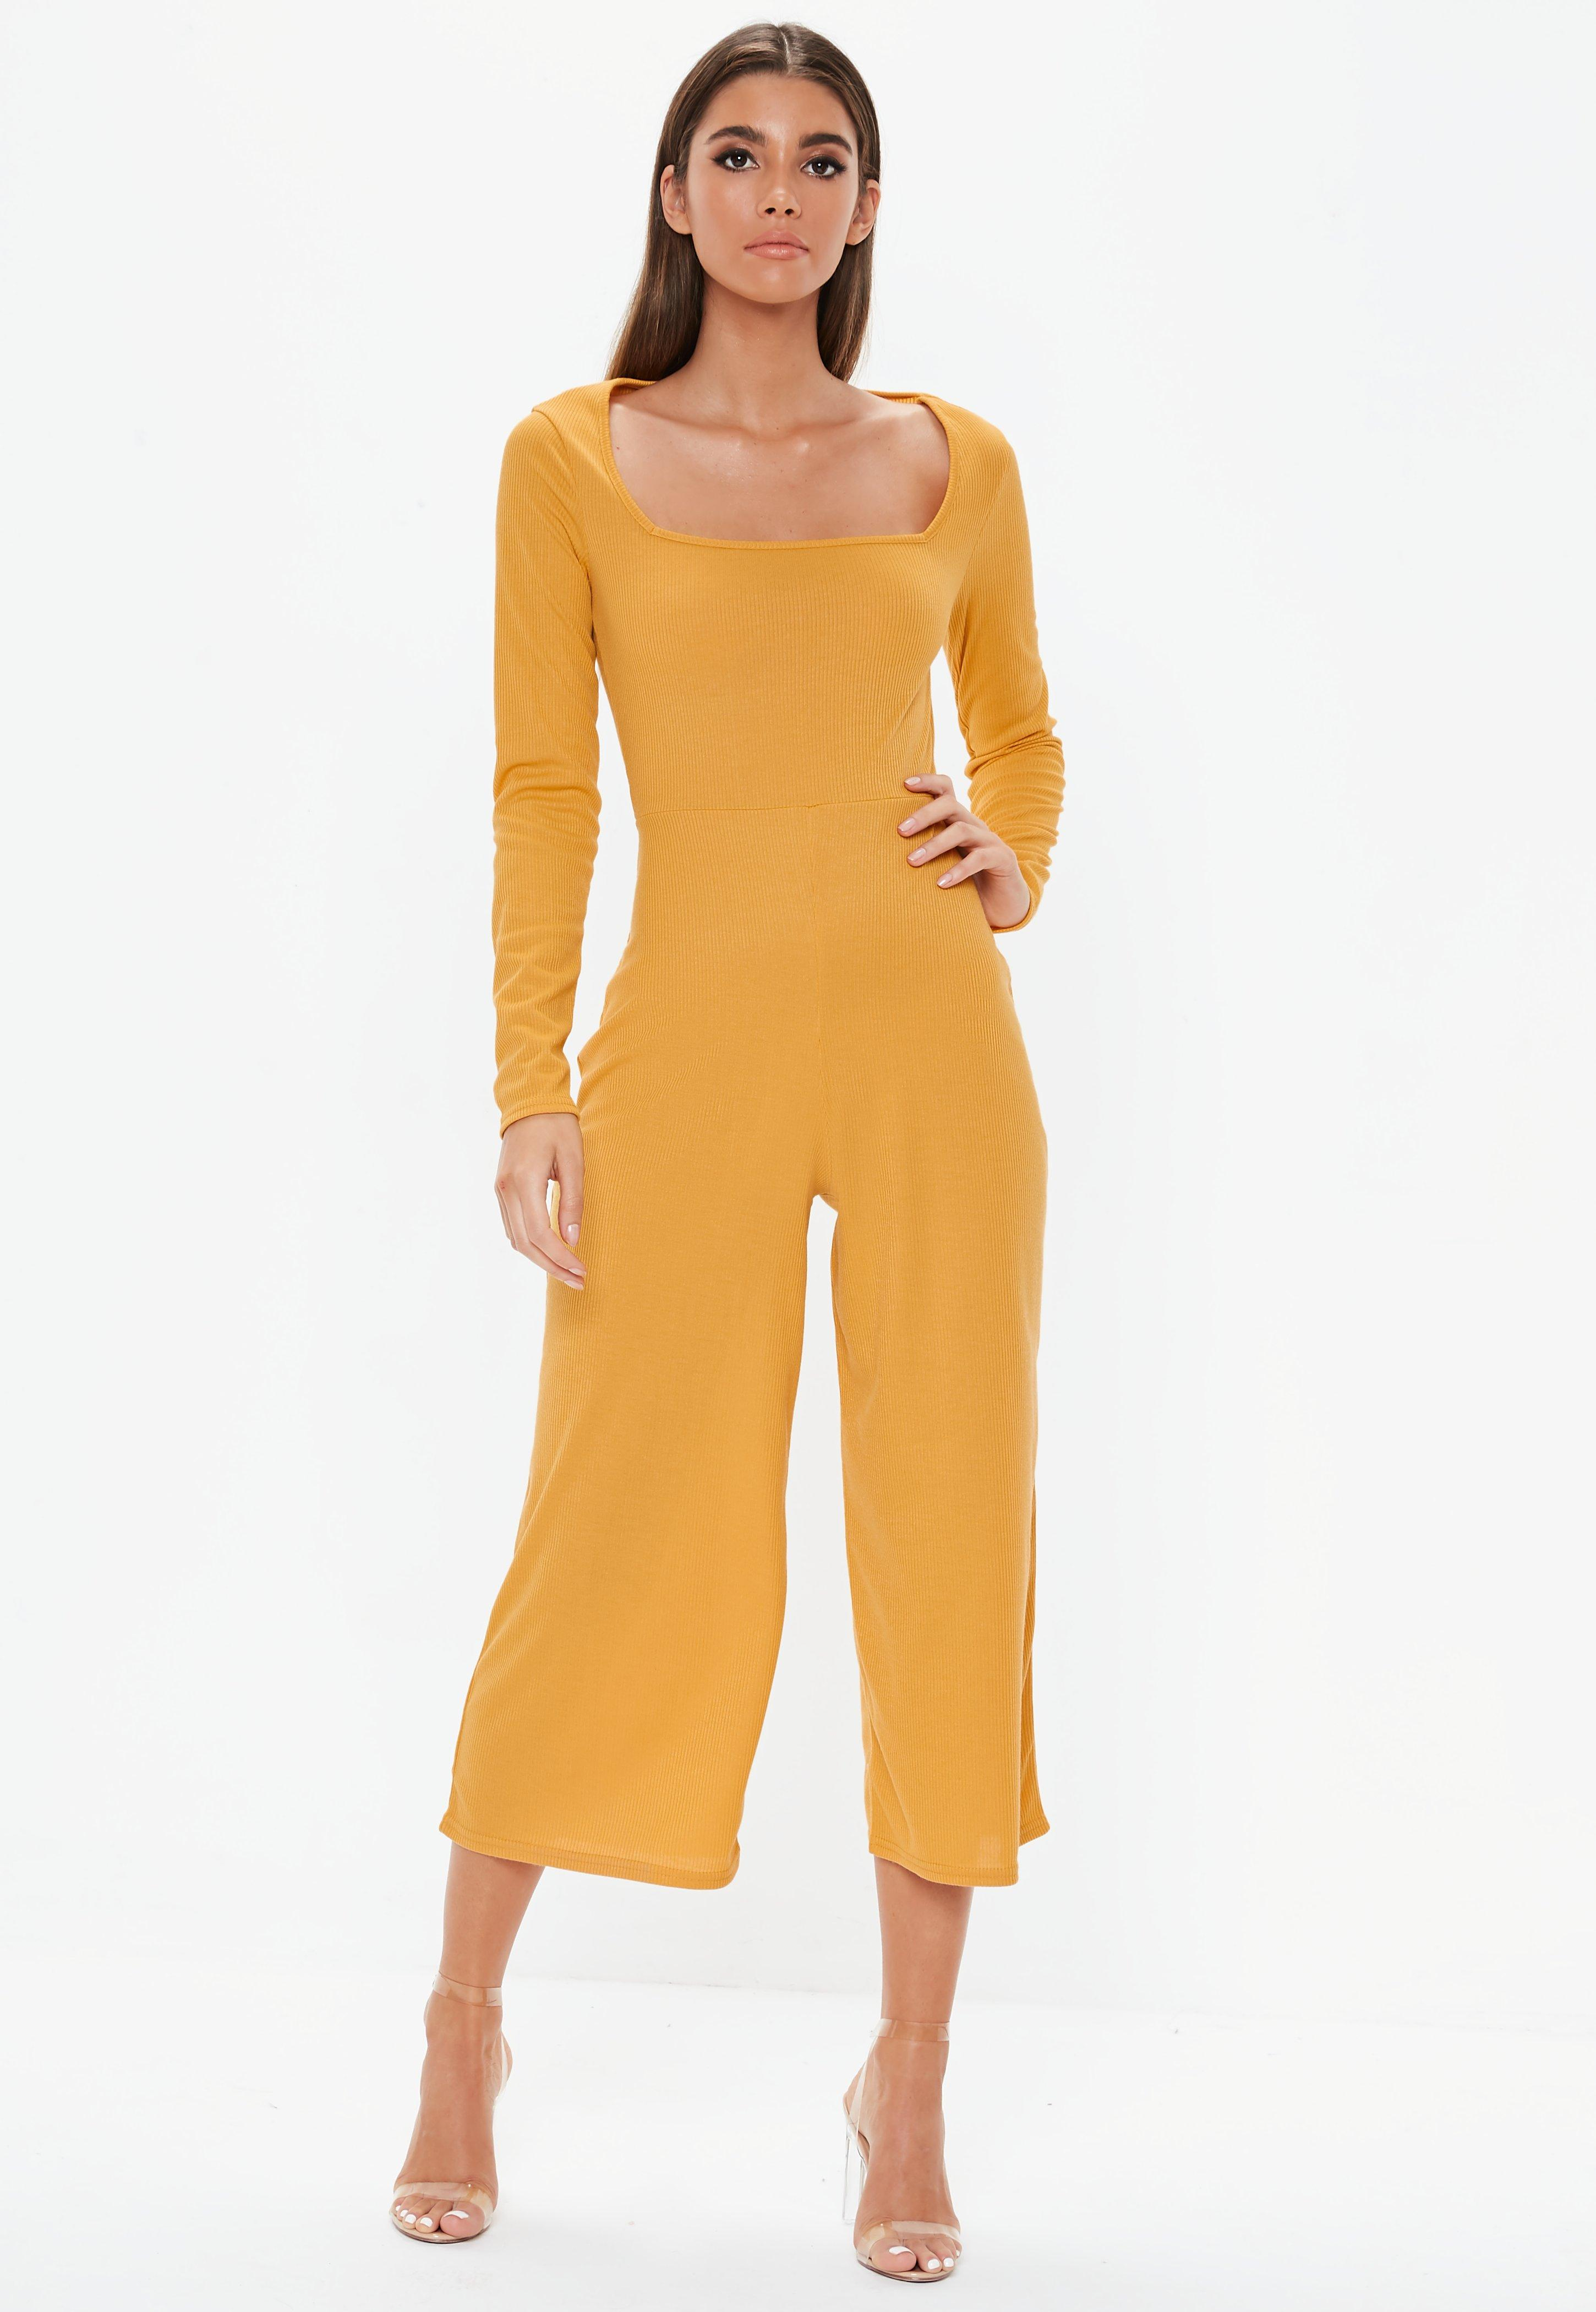 a20f13fedb07 Culotte Jumpsuits | Women's Cropped Jumpsuits - Missguided